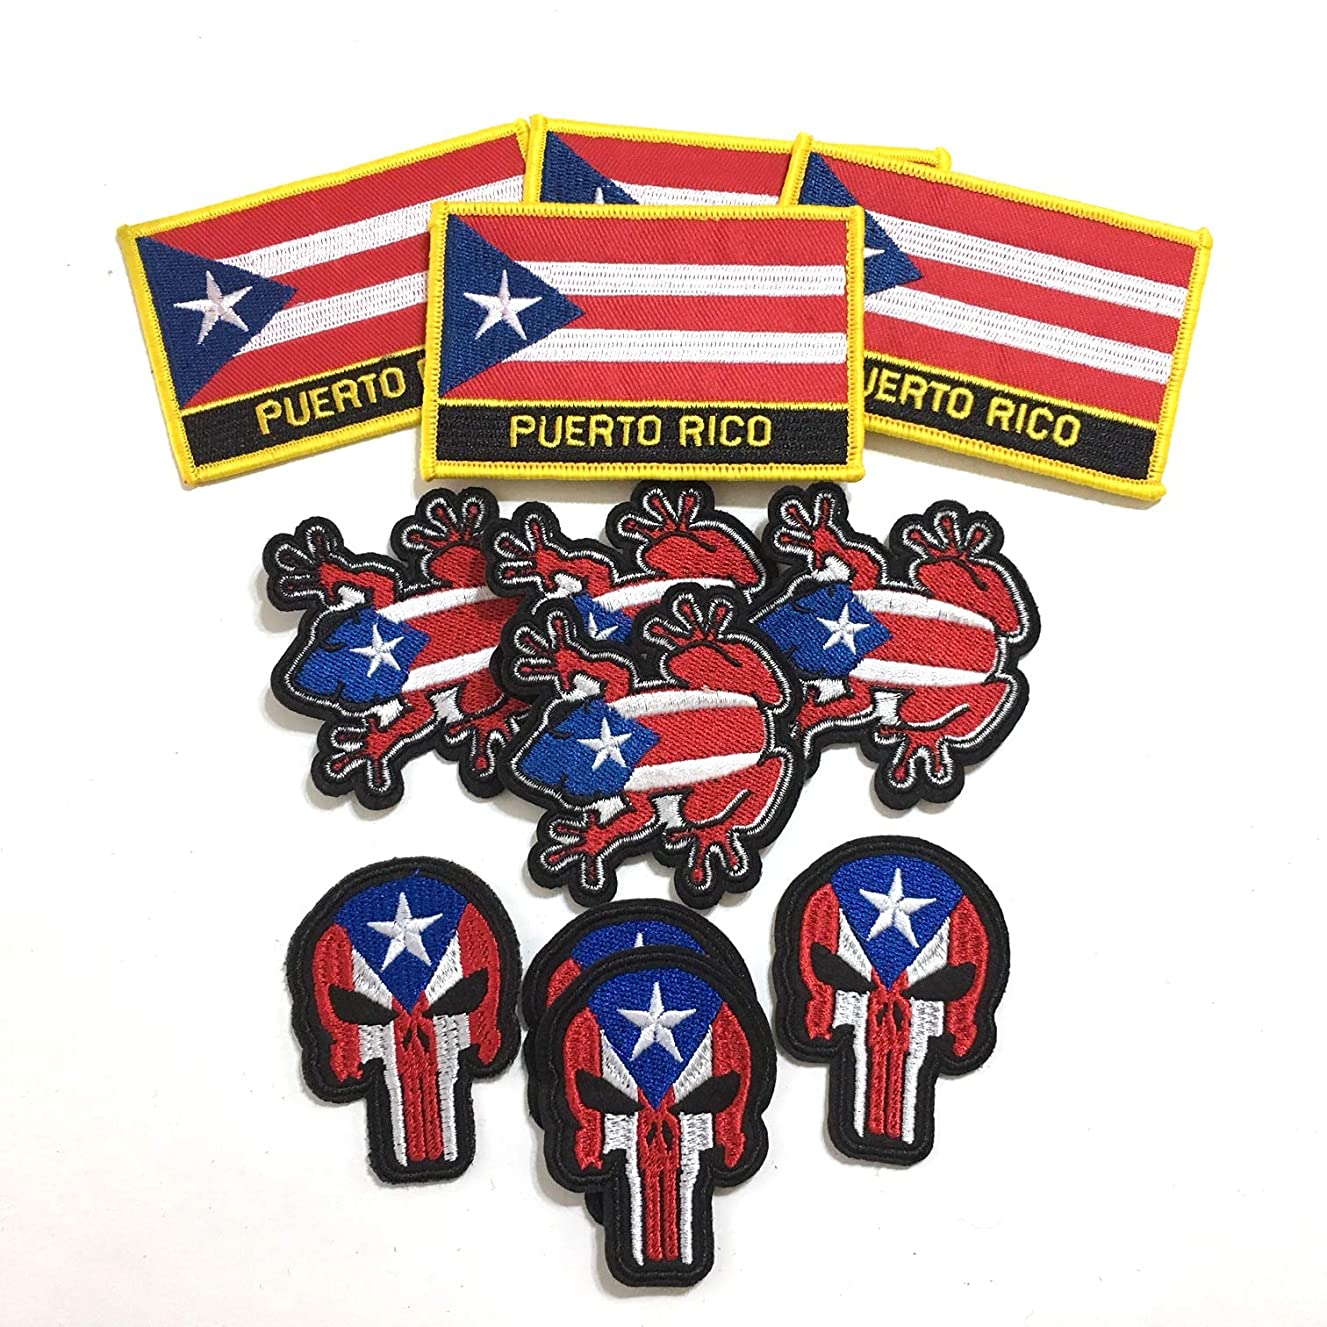 Mad can studios Puerto Rican Rico Flag Patches Clothing Backpacks Jeans Hats Jackets and Much More Boricua (12)